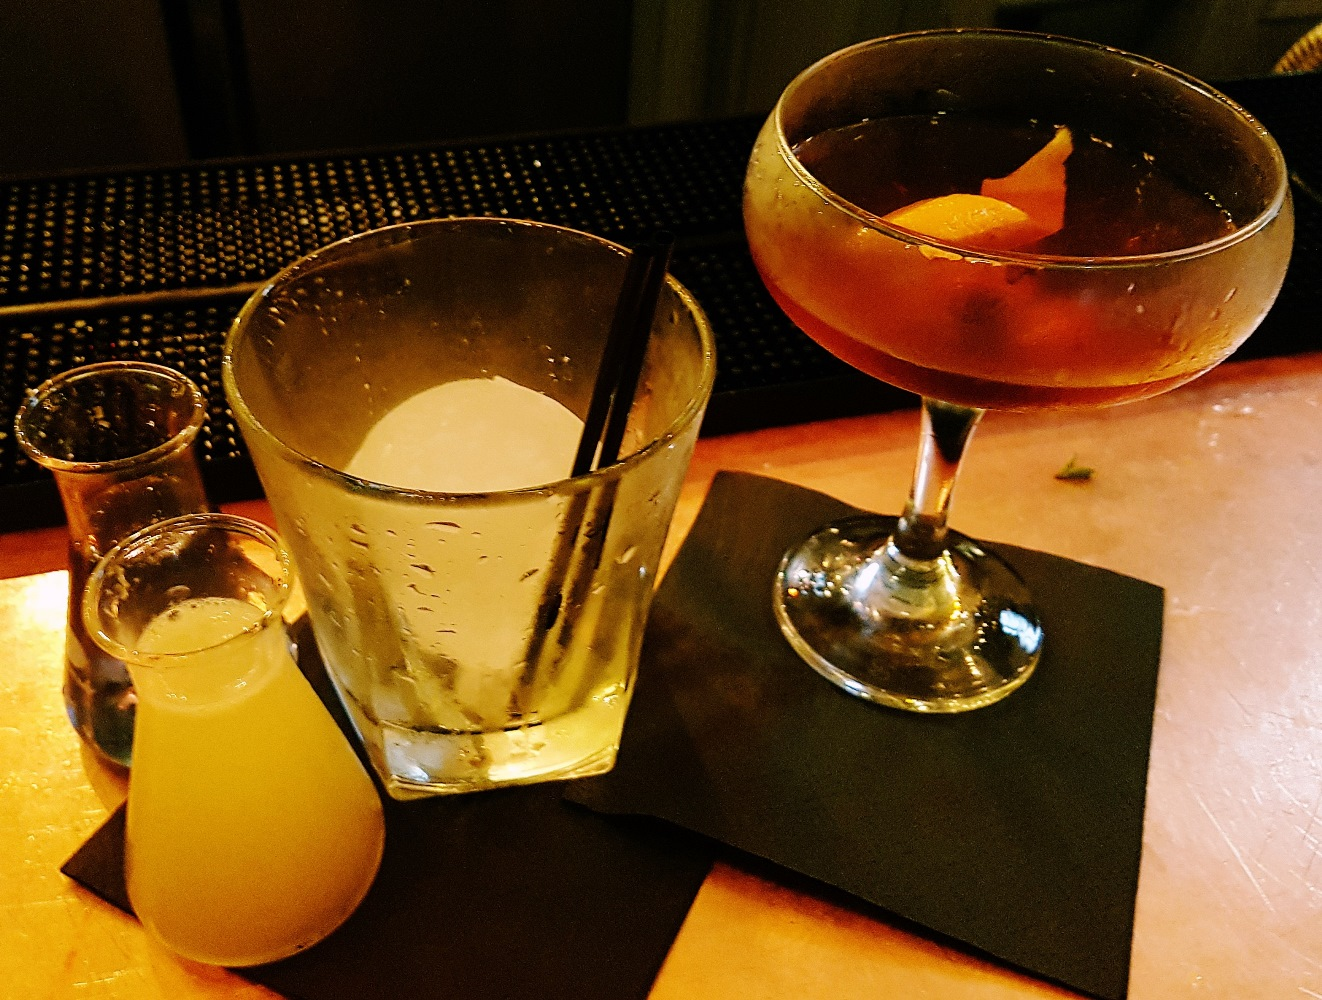 Colour Changing One and Chocolate Orange Sazerac cocktails at Alchemist Leeds Trinity